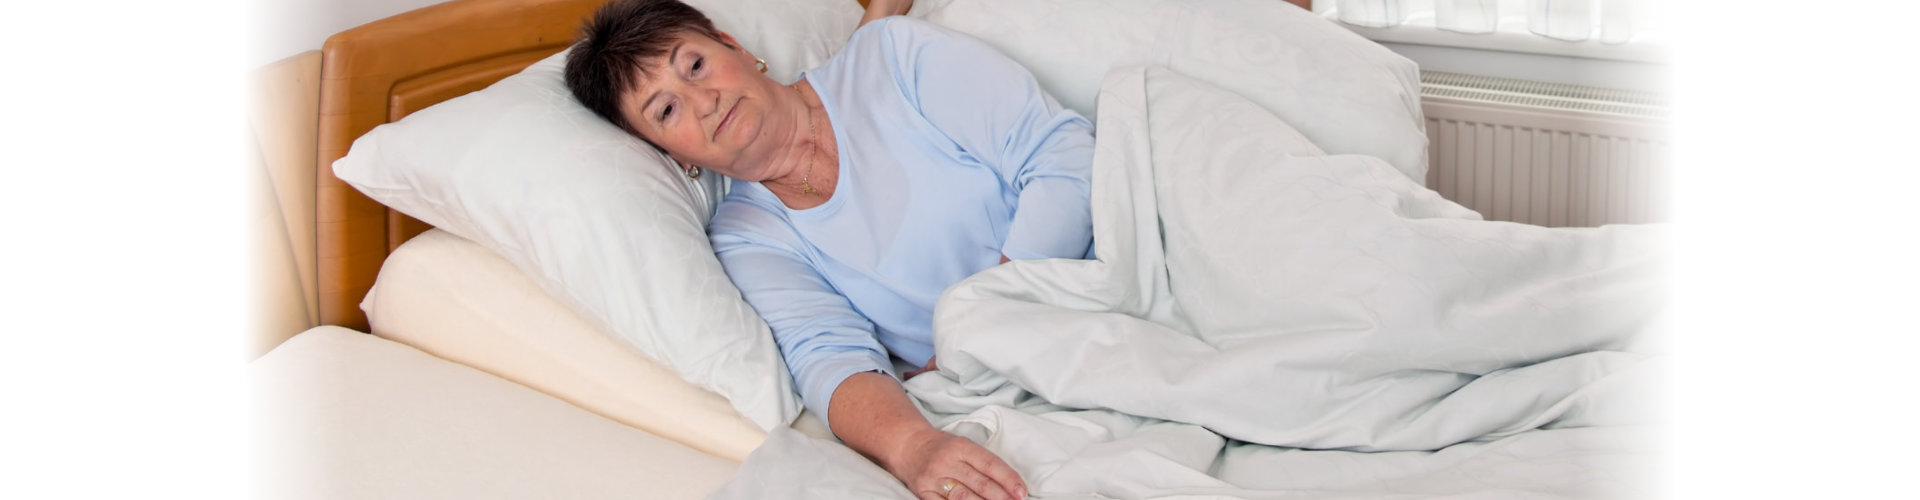 senior woman laying in bed